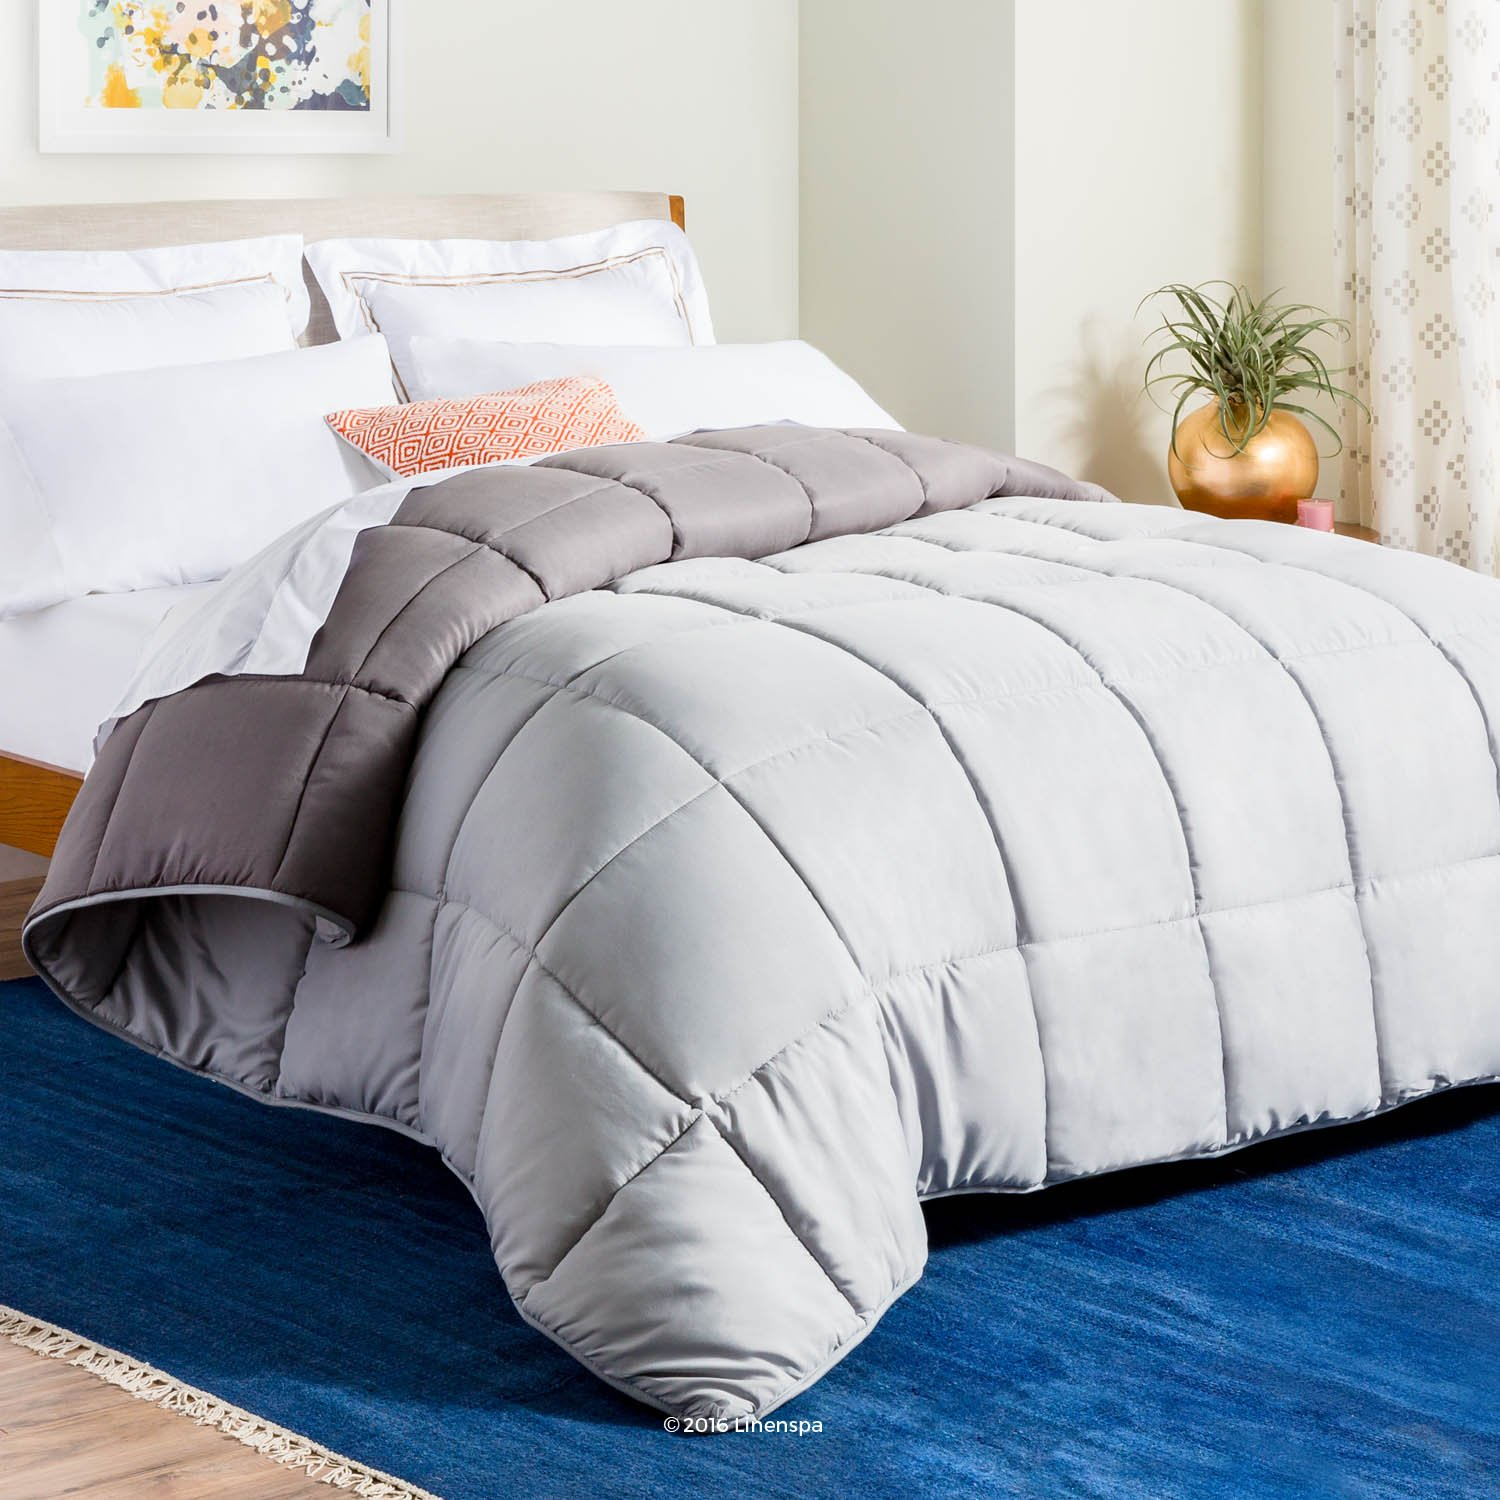 Linenspa All-Season Reversible Down Alternative Quilted Comforter - Corner Duvet Tabs - Hypoallergenic - Plush Microfiber Fill - Box Stitched - Machine Washable - Stone/Charcoal - Twin XL